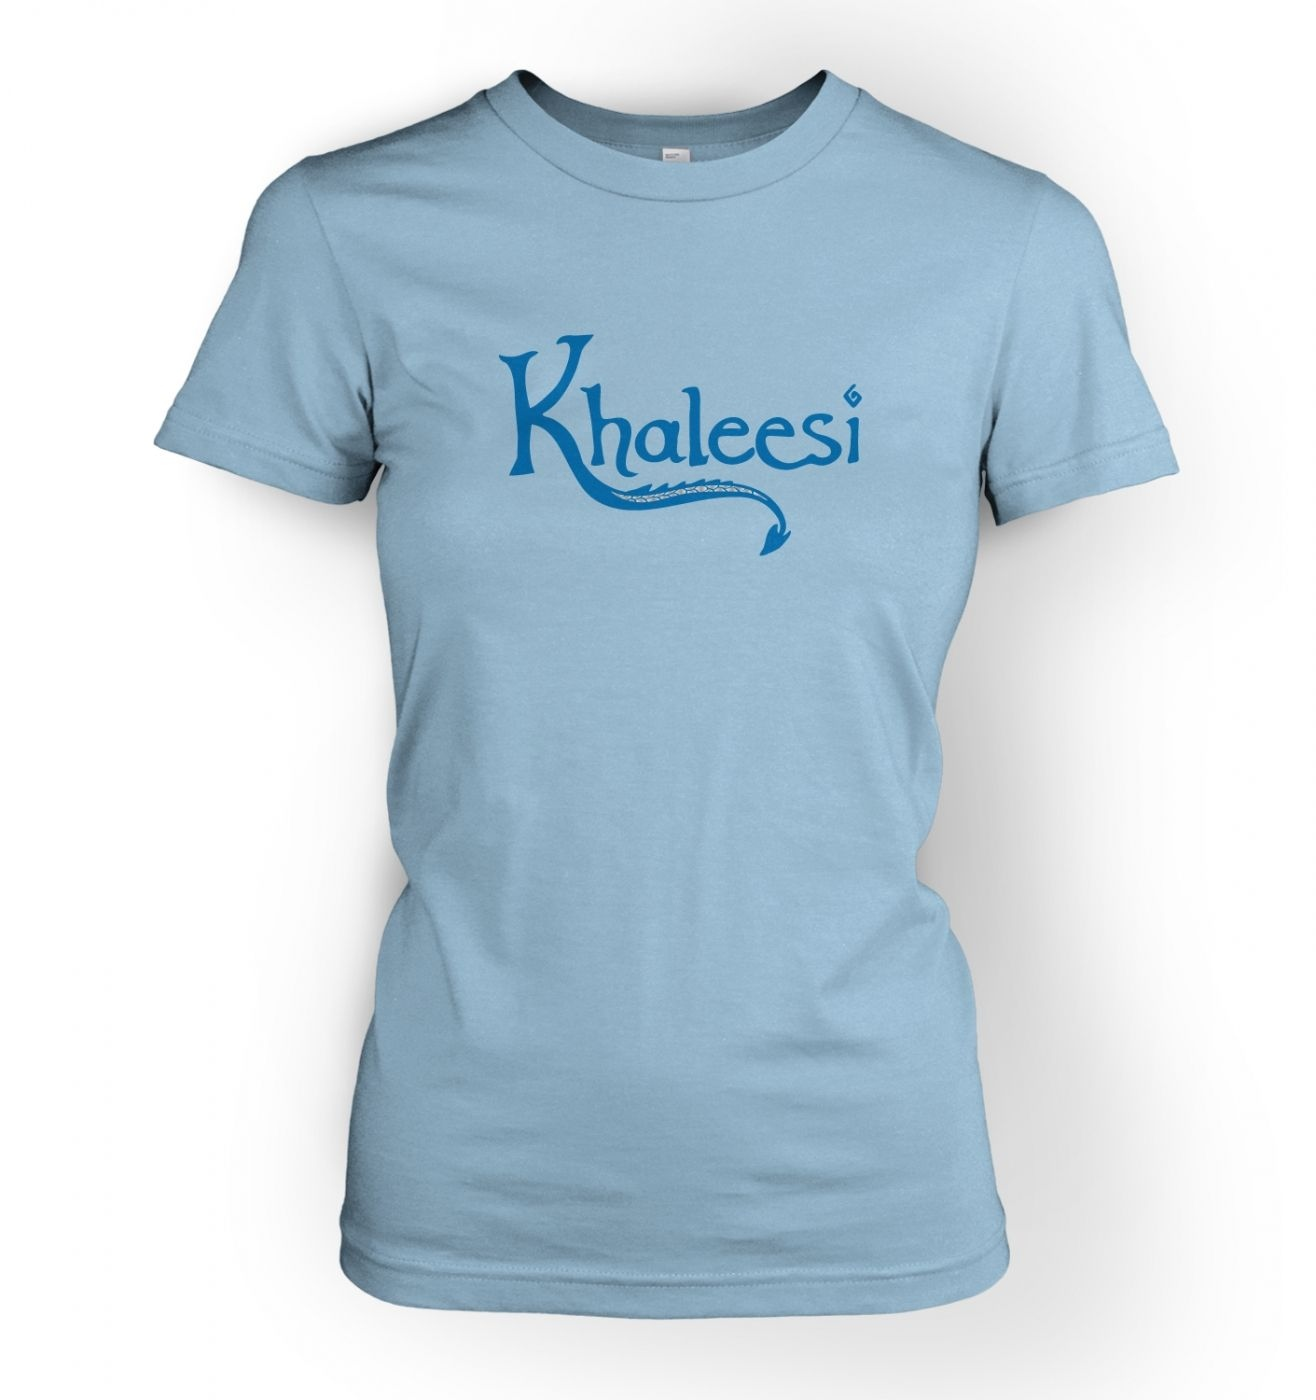 I M A Khaleesi Women S T Shirt: Khaleesi (blue)womens T-shirt